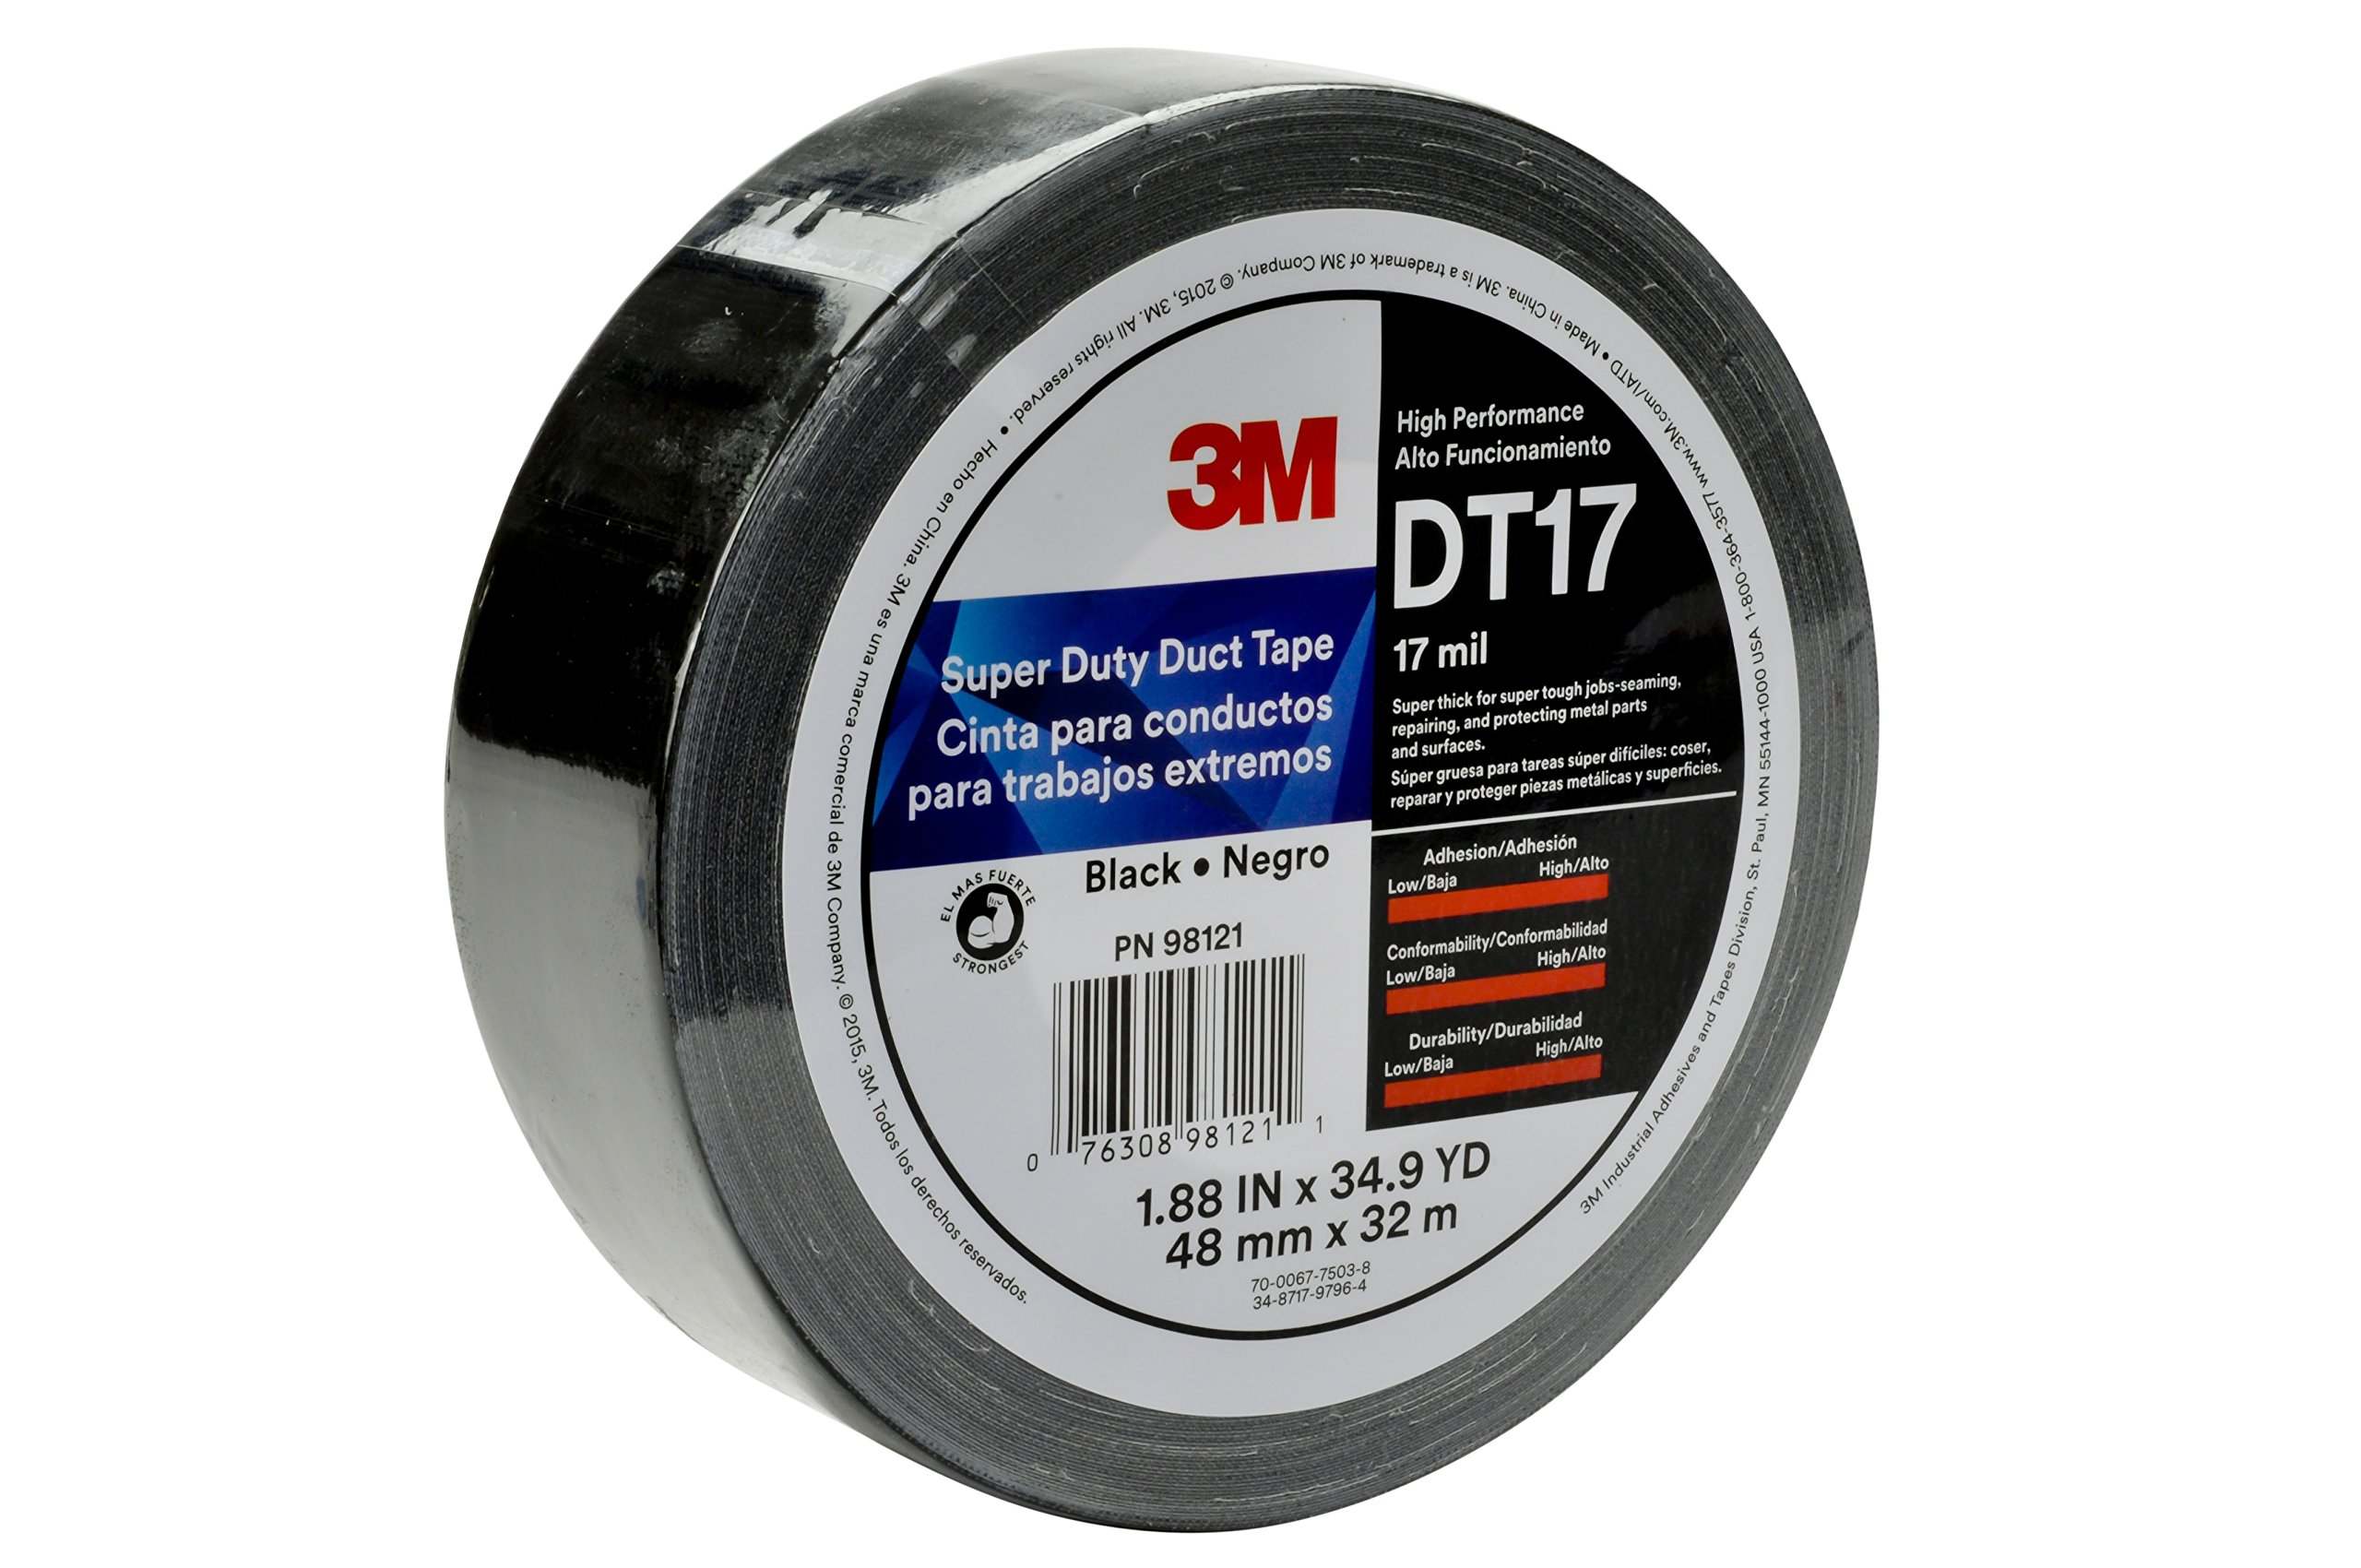 3M Super Duty Duct Tape DT17 Black, 48 mm x 32 m 17 mil, Individually Wrapped Conveniently Packaged (1 Roll)